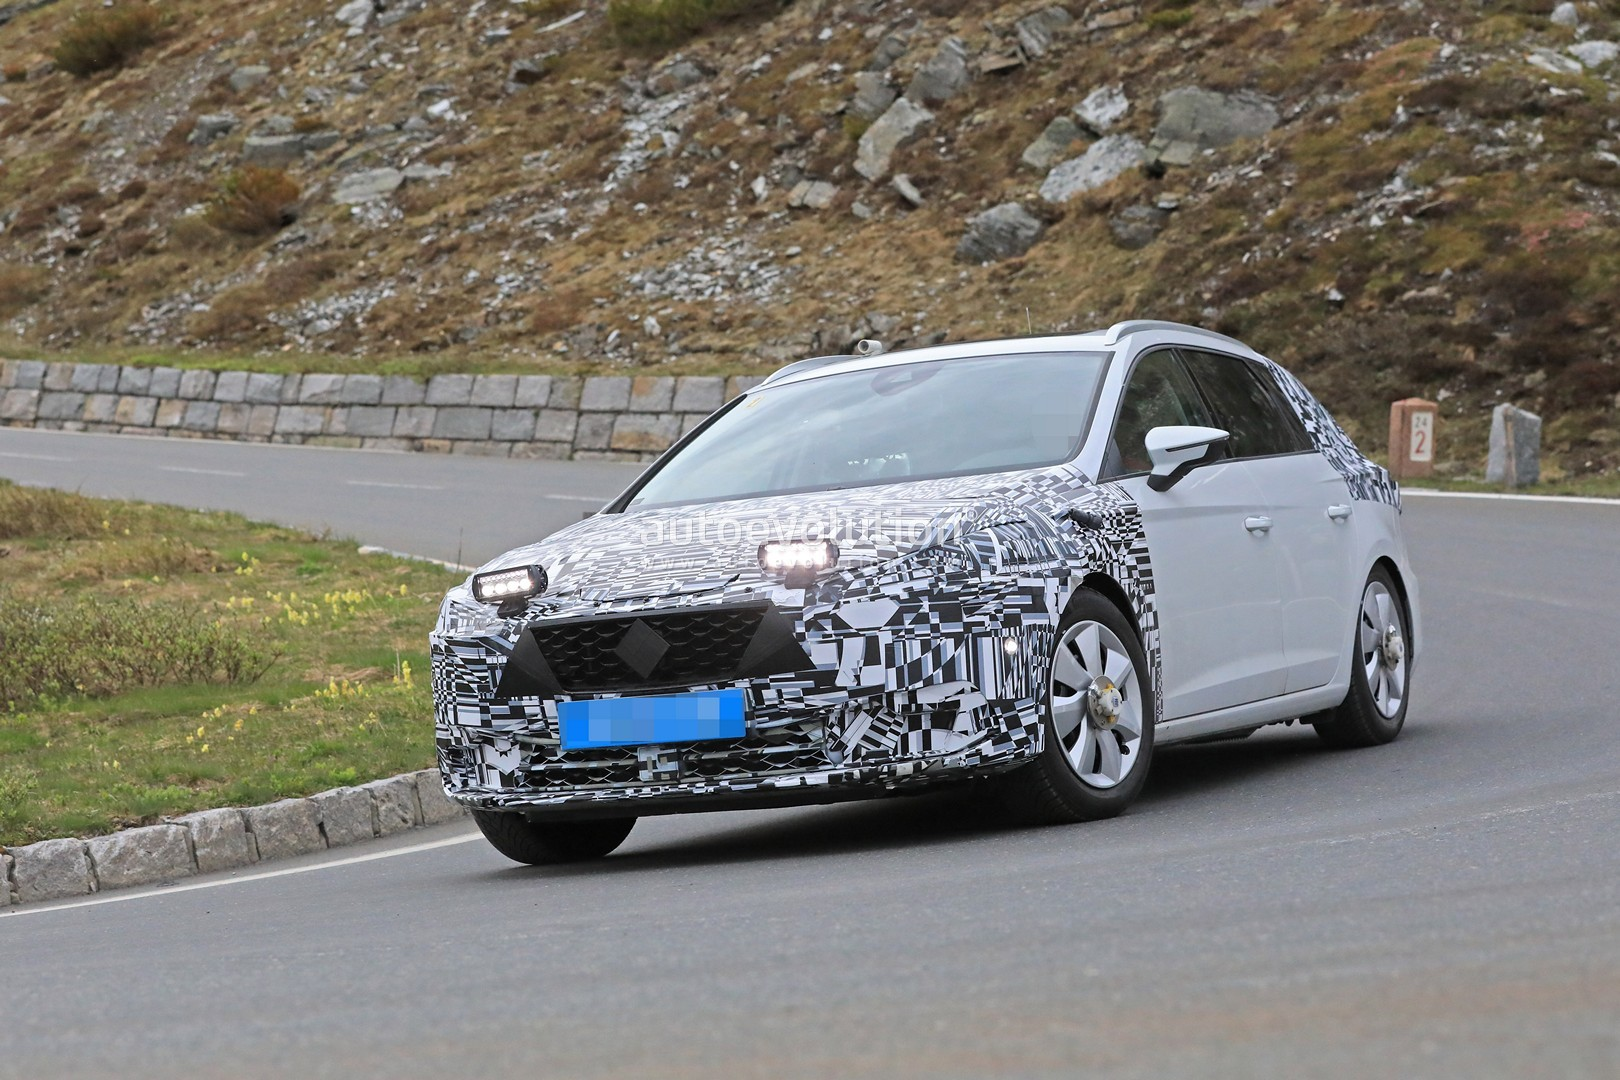 Spyshots: 2019 SEAT Leon Shows up for the First Time, Has ...